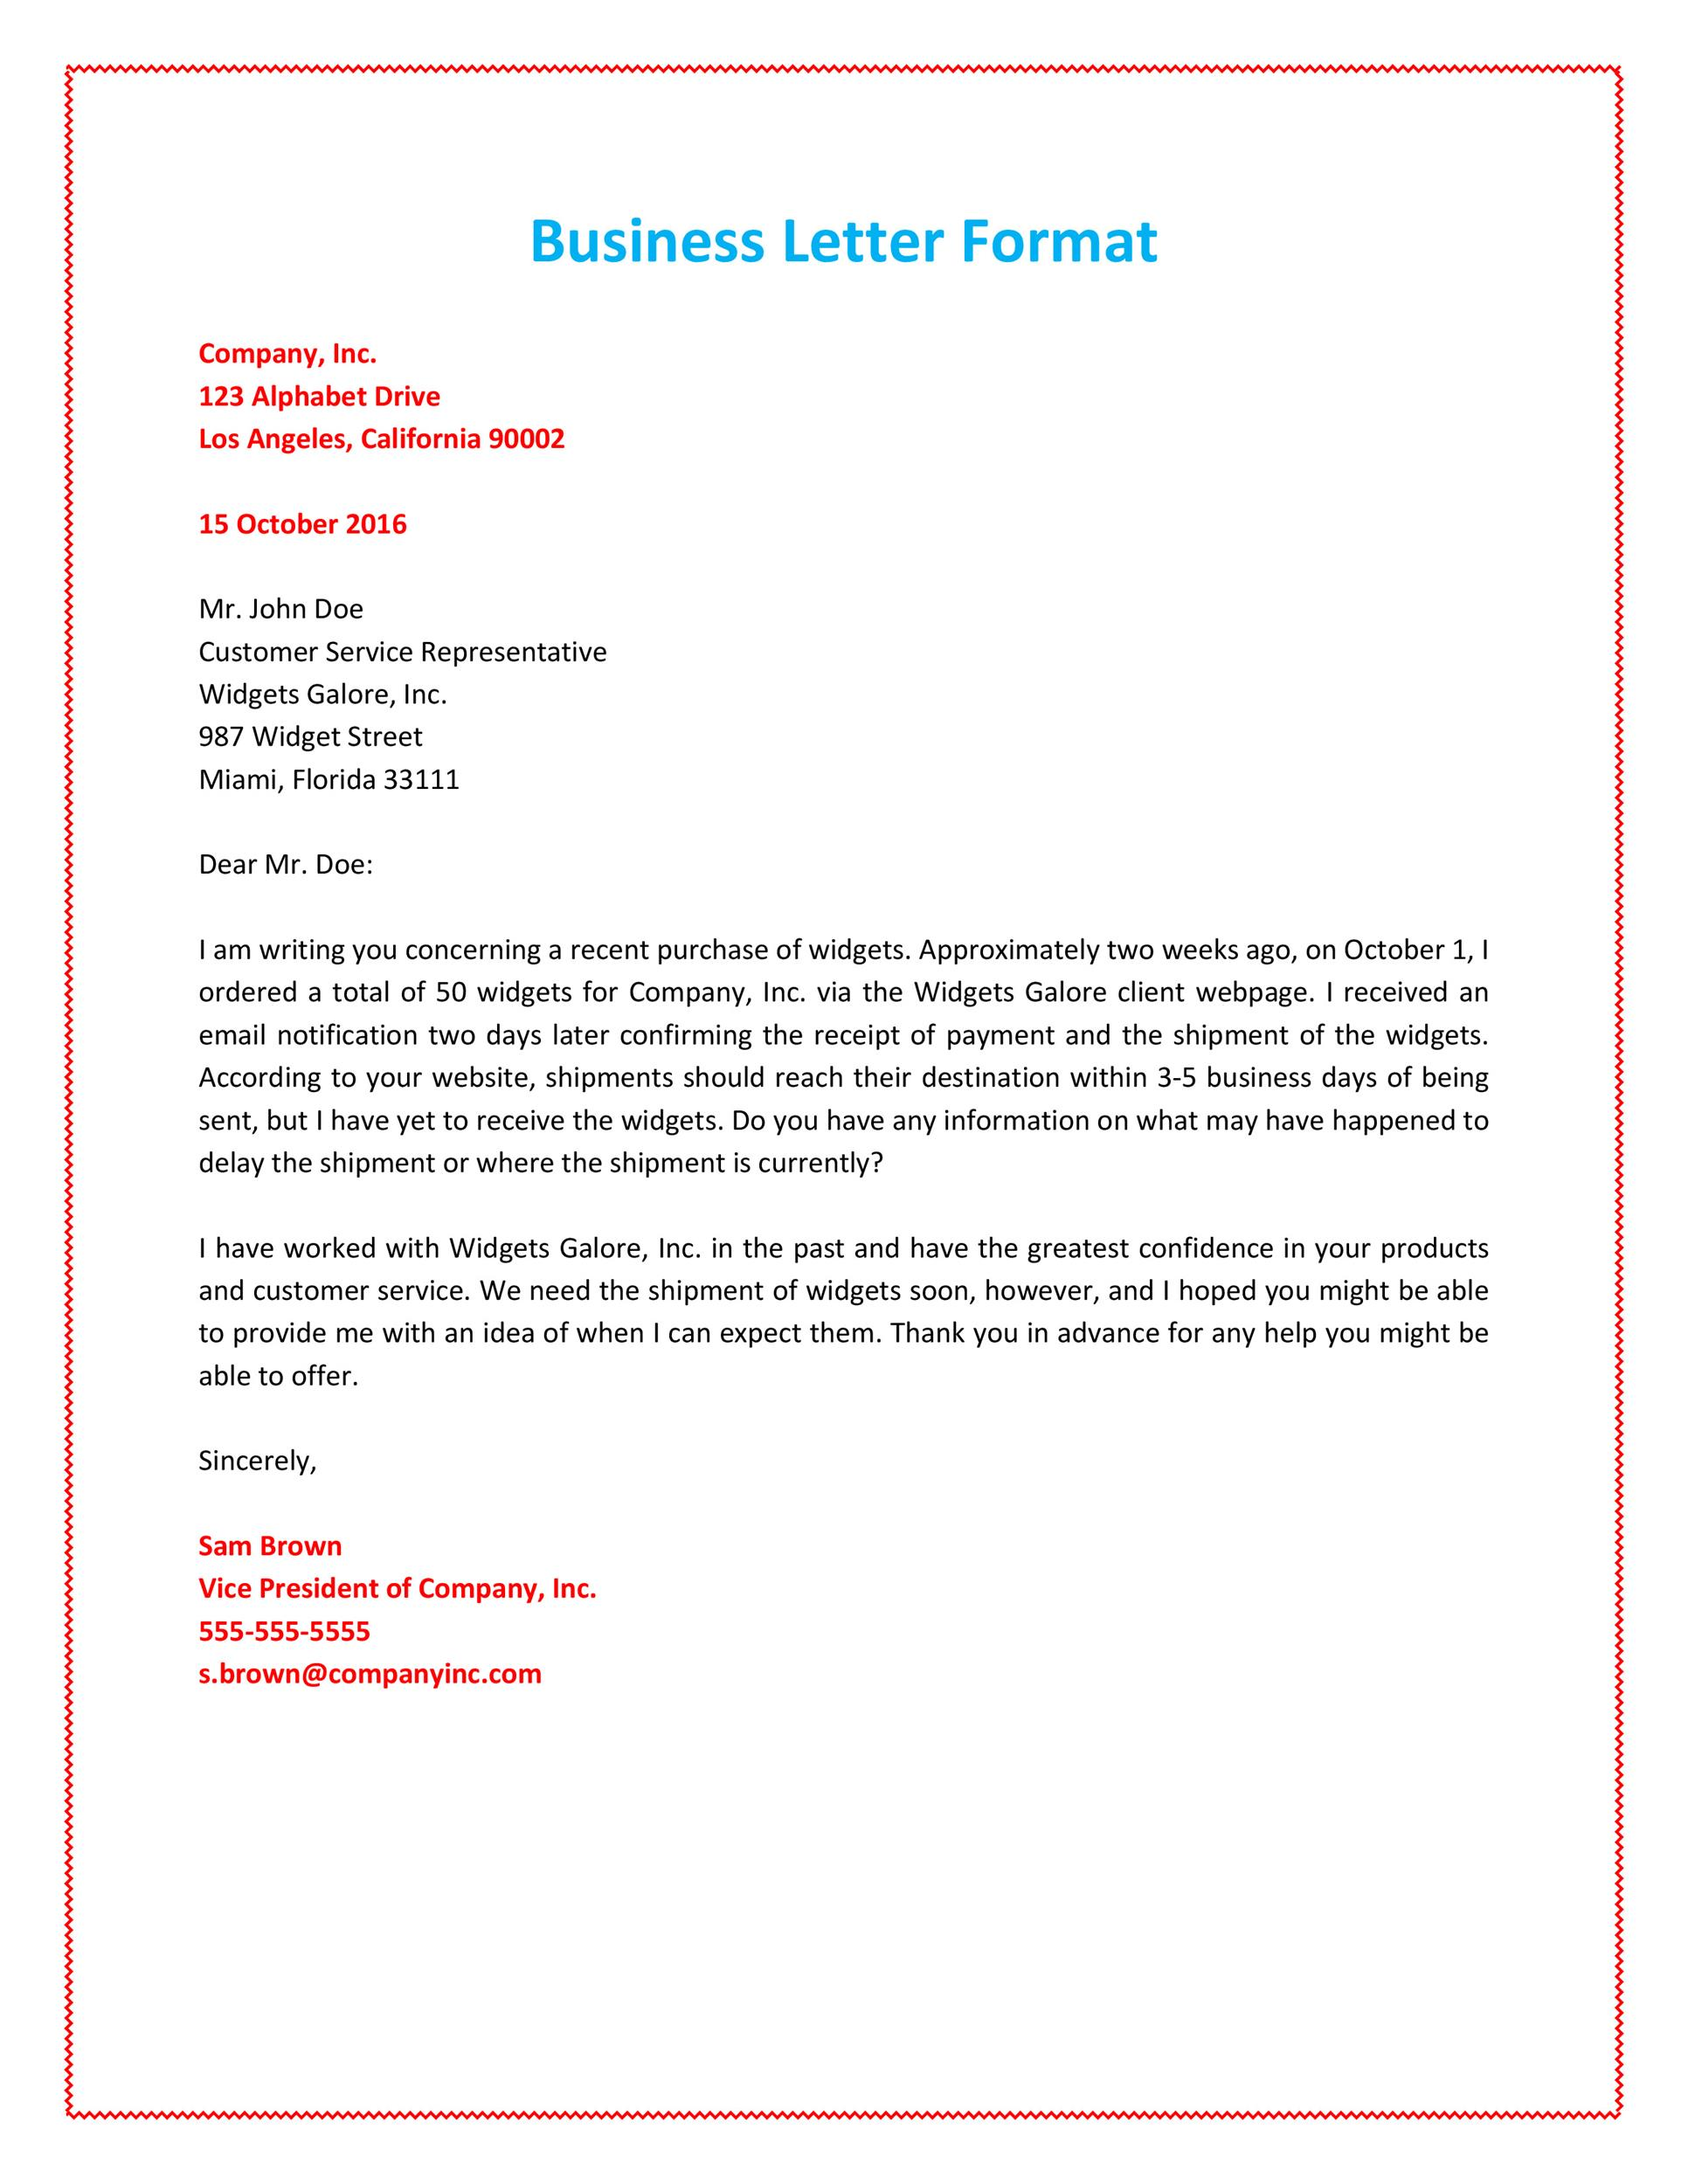 35 formal business letter format templates examples template lab business letter format example altavistaventures Gallery